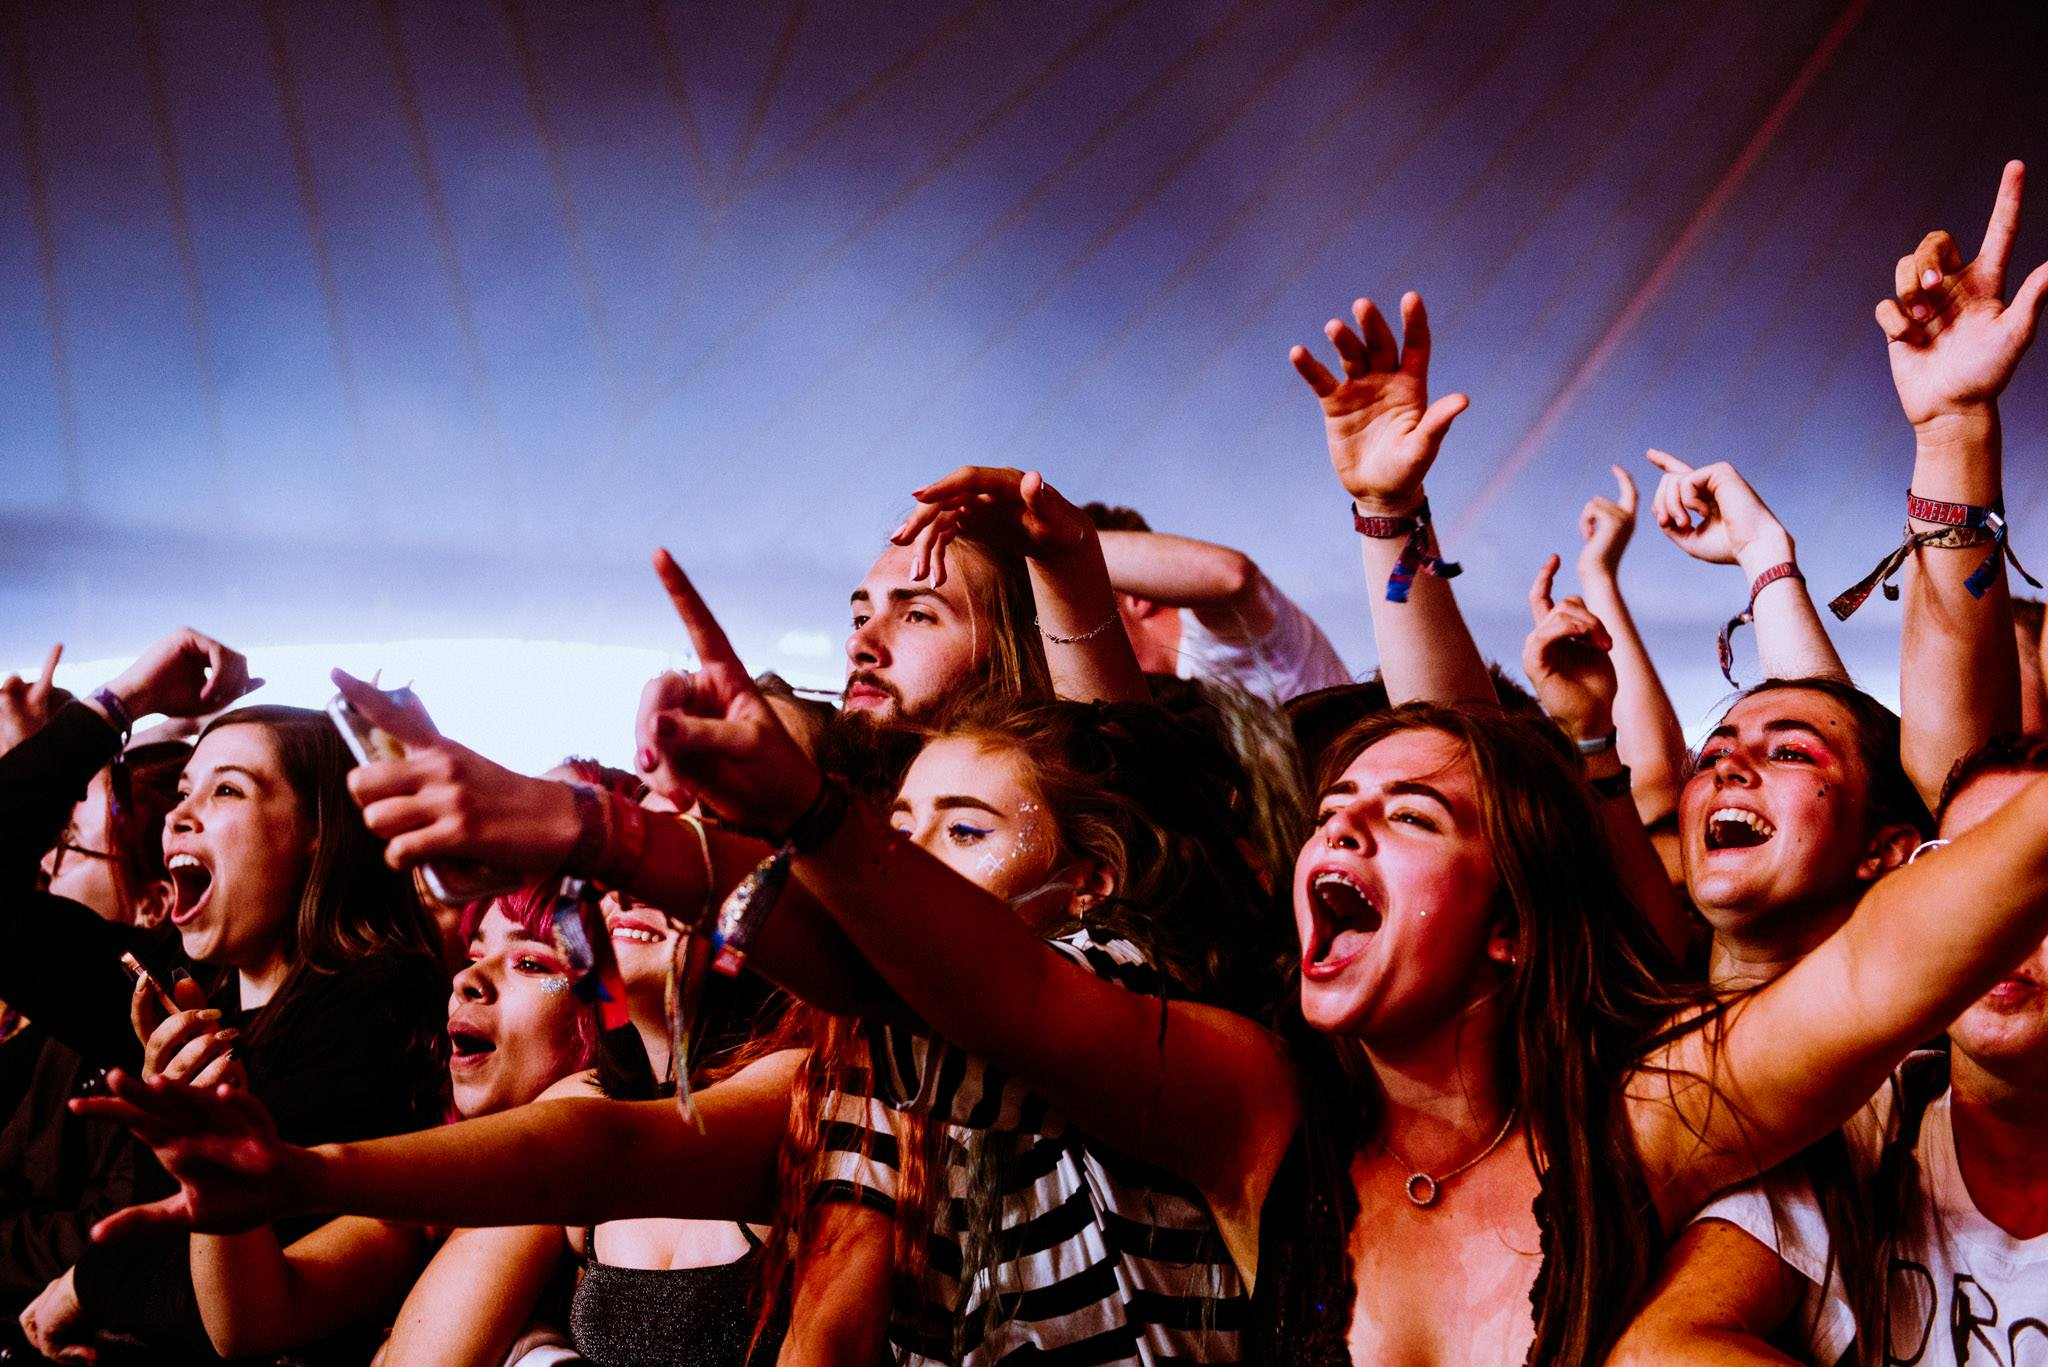 Which Types Of Music Events Are Best For Going And Have Fun?